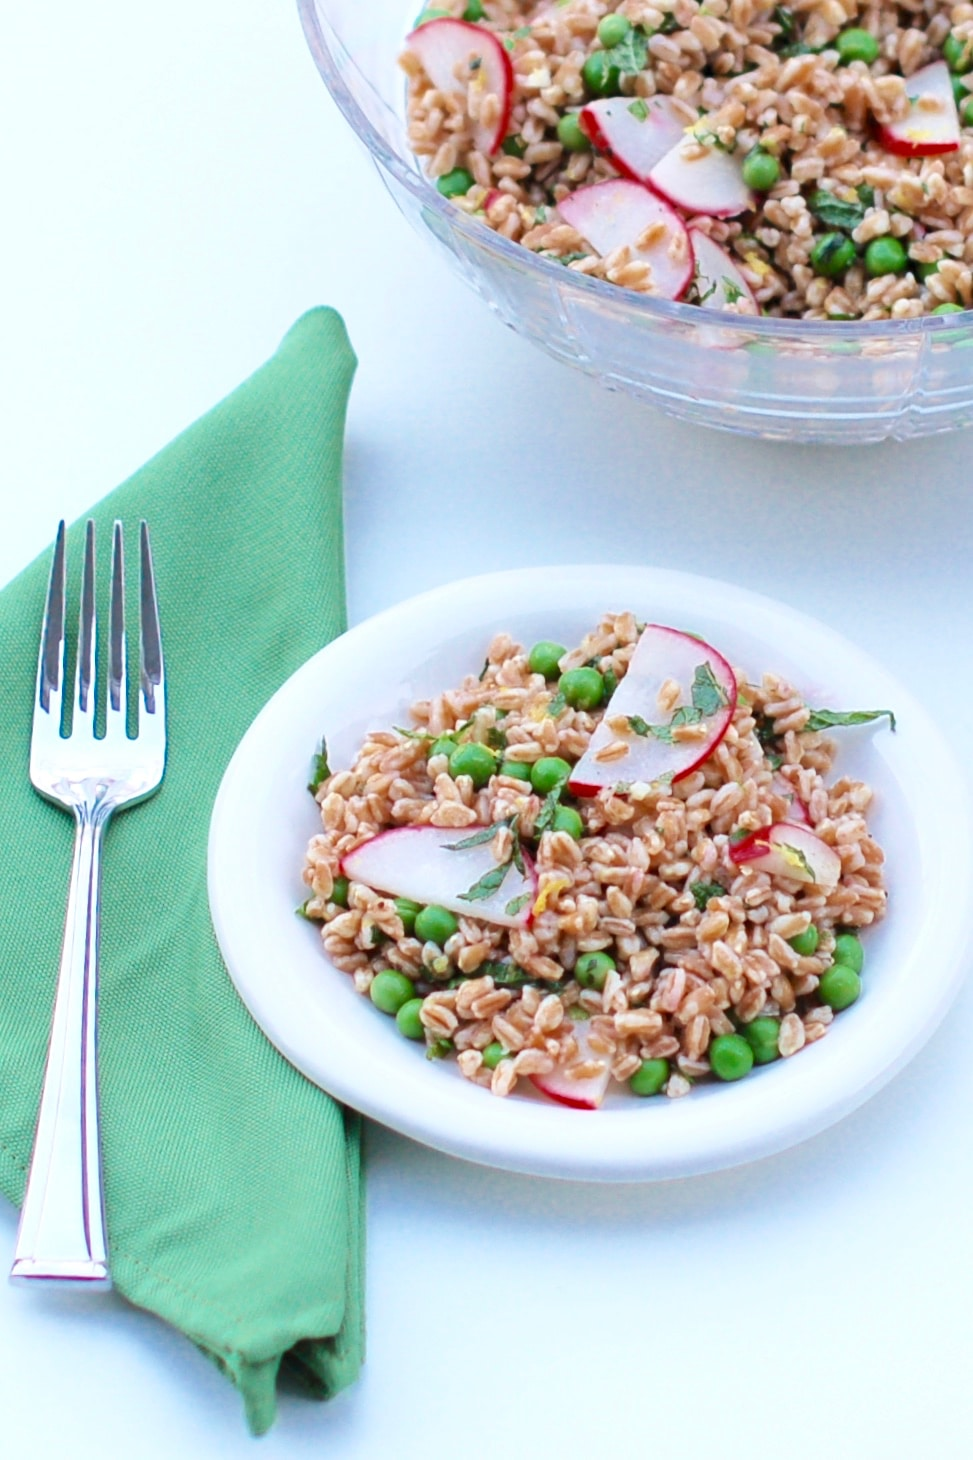 Nutty farro, crunchy radishes, and sweet peas are tossed together in a tart lemon mint dressing in this bright Spring Pea and Radish Farro Salad! #vegan #nutfree #springrecipes #farro #wholegrains